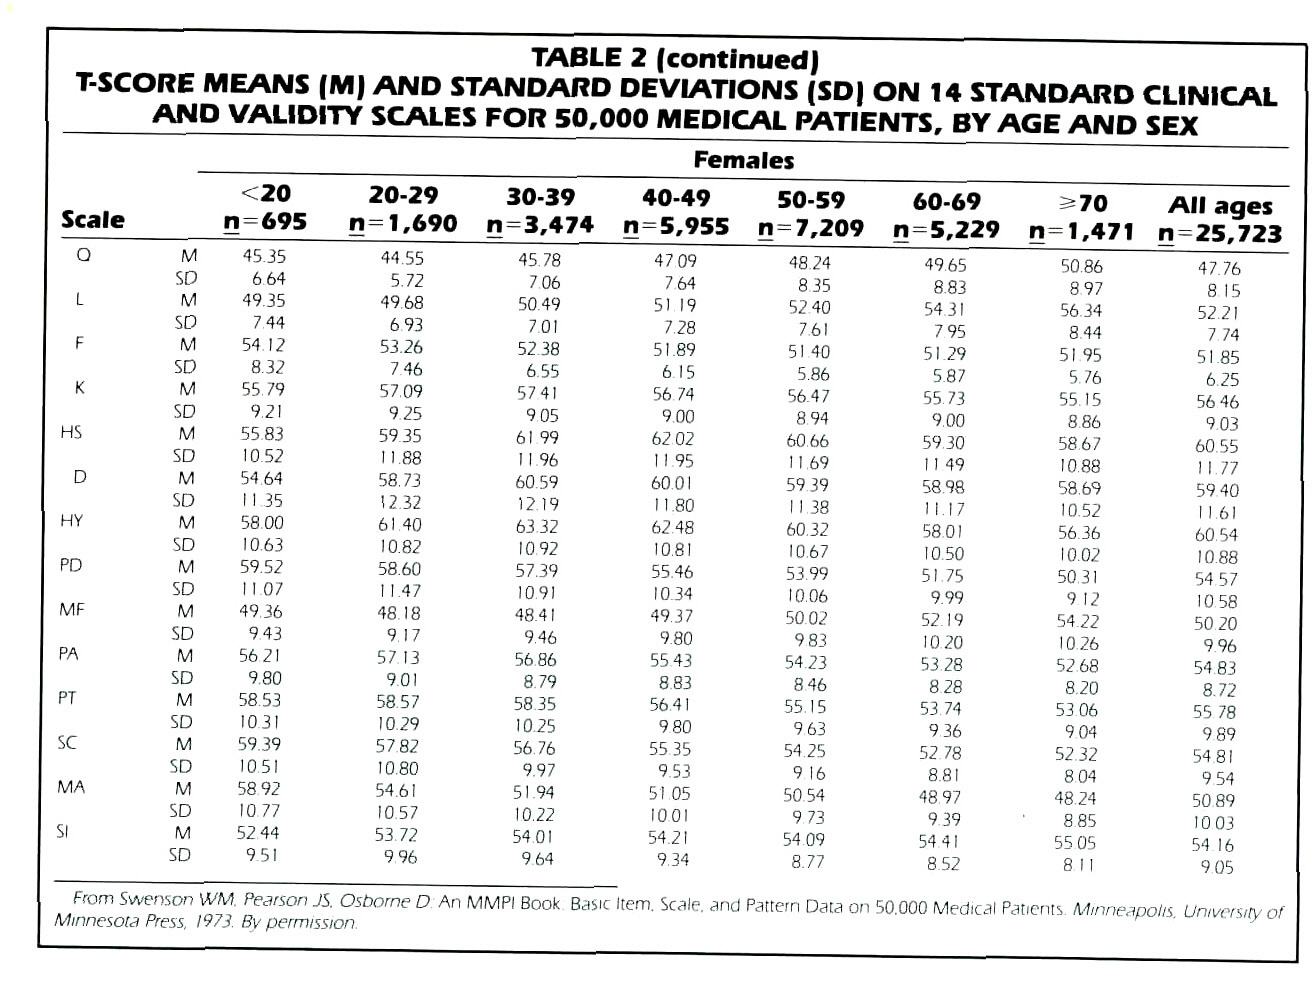 TABLE 2 (continued)T-SCORE MEANS (M) AND STANDARD DEVIATIONS (SD| ON 14 STANDARD CLINICAL AND VALIDITY SCALES FOR 50,000 MEDICAL PATIENTS, BYAGE AND SEX